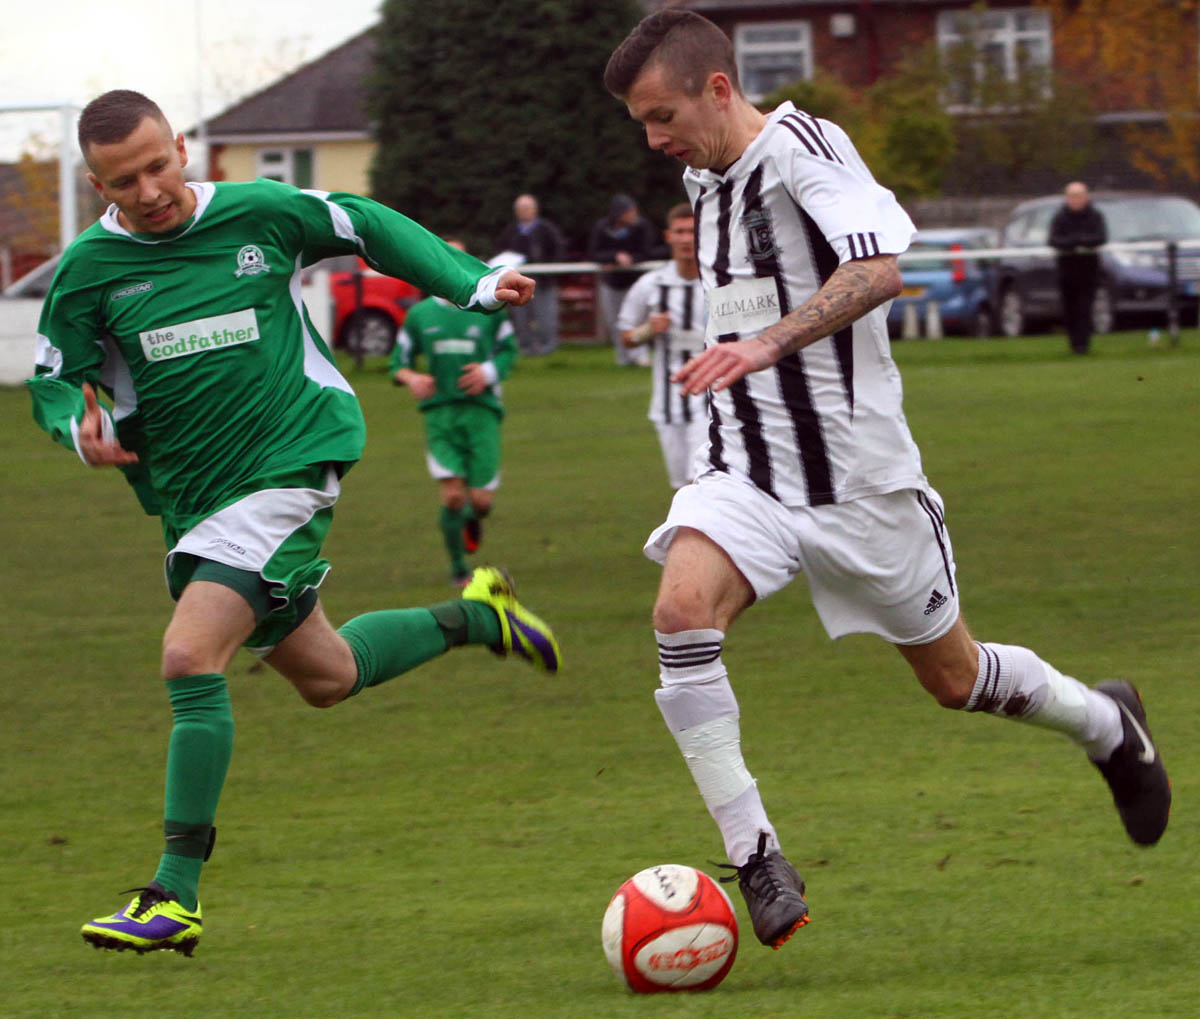 Barnton closed the gap at the Cheshire L